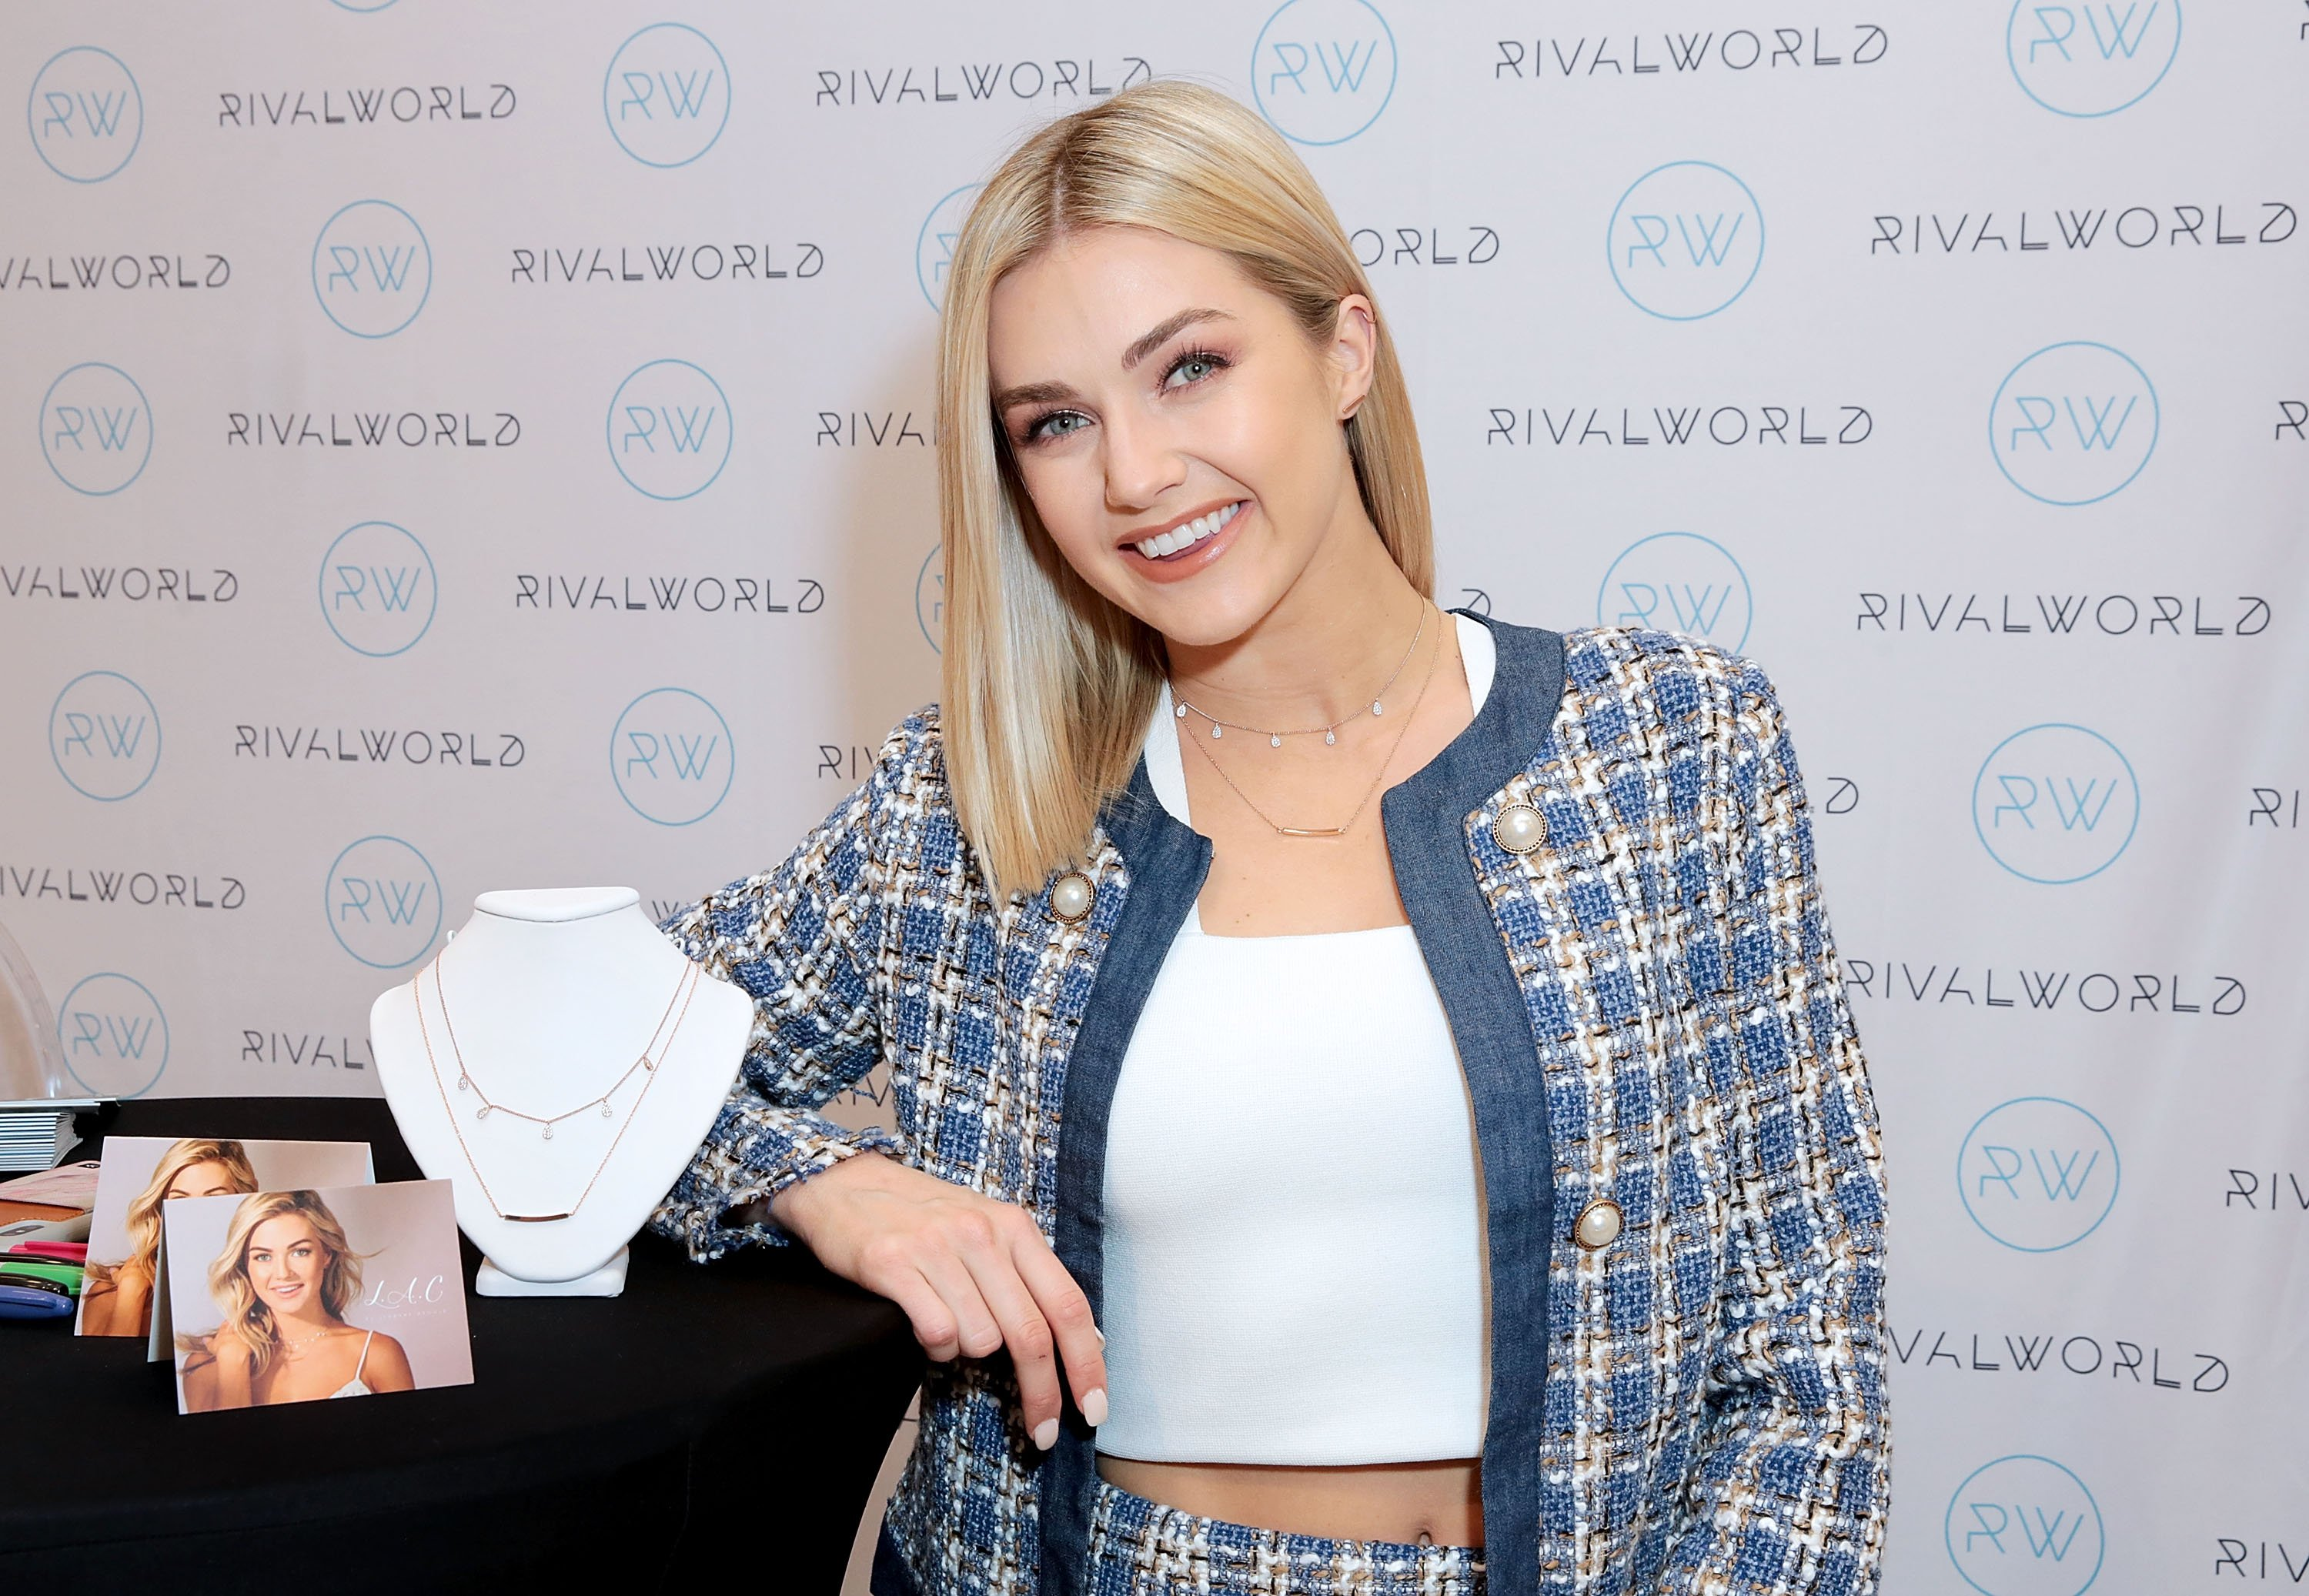 Lindsay Arnold attends the launch of the RivalWorld Market at Macy's Westfield Century City on February 5, 2019 in Century City, California | Photo: Getty Images